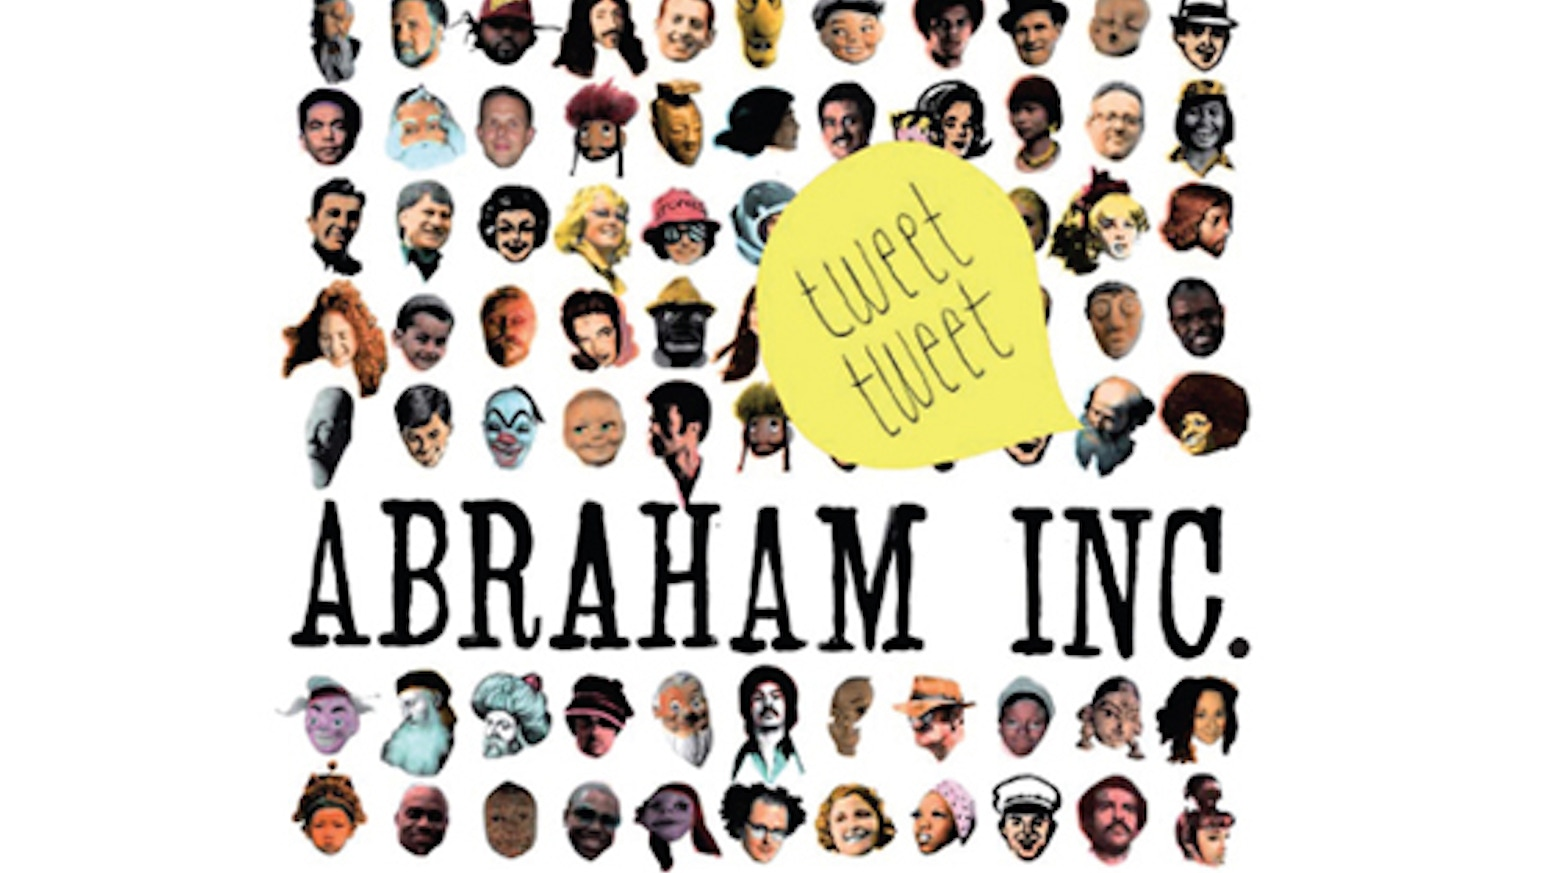 Abraham Inc Video Premiere by 99 Hooker » Fulfillment of